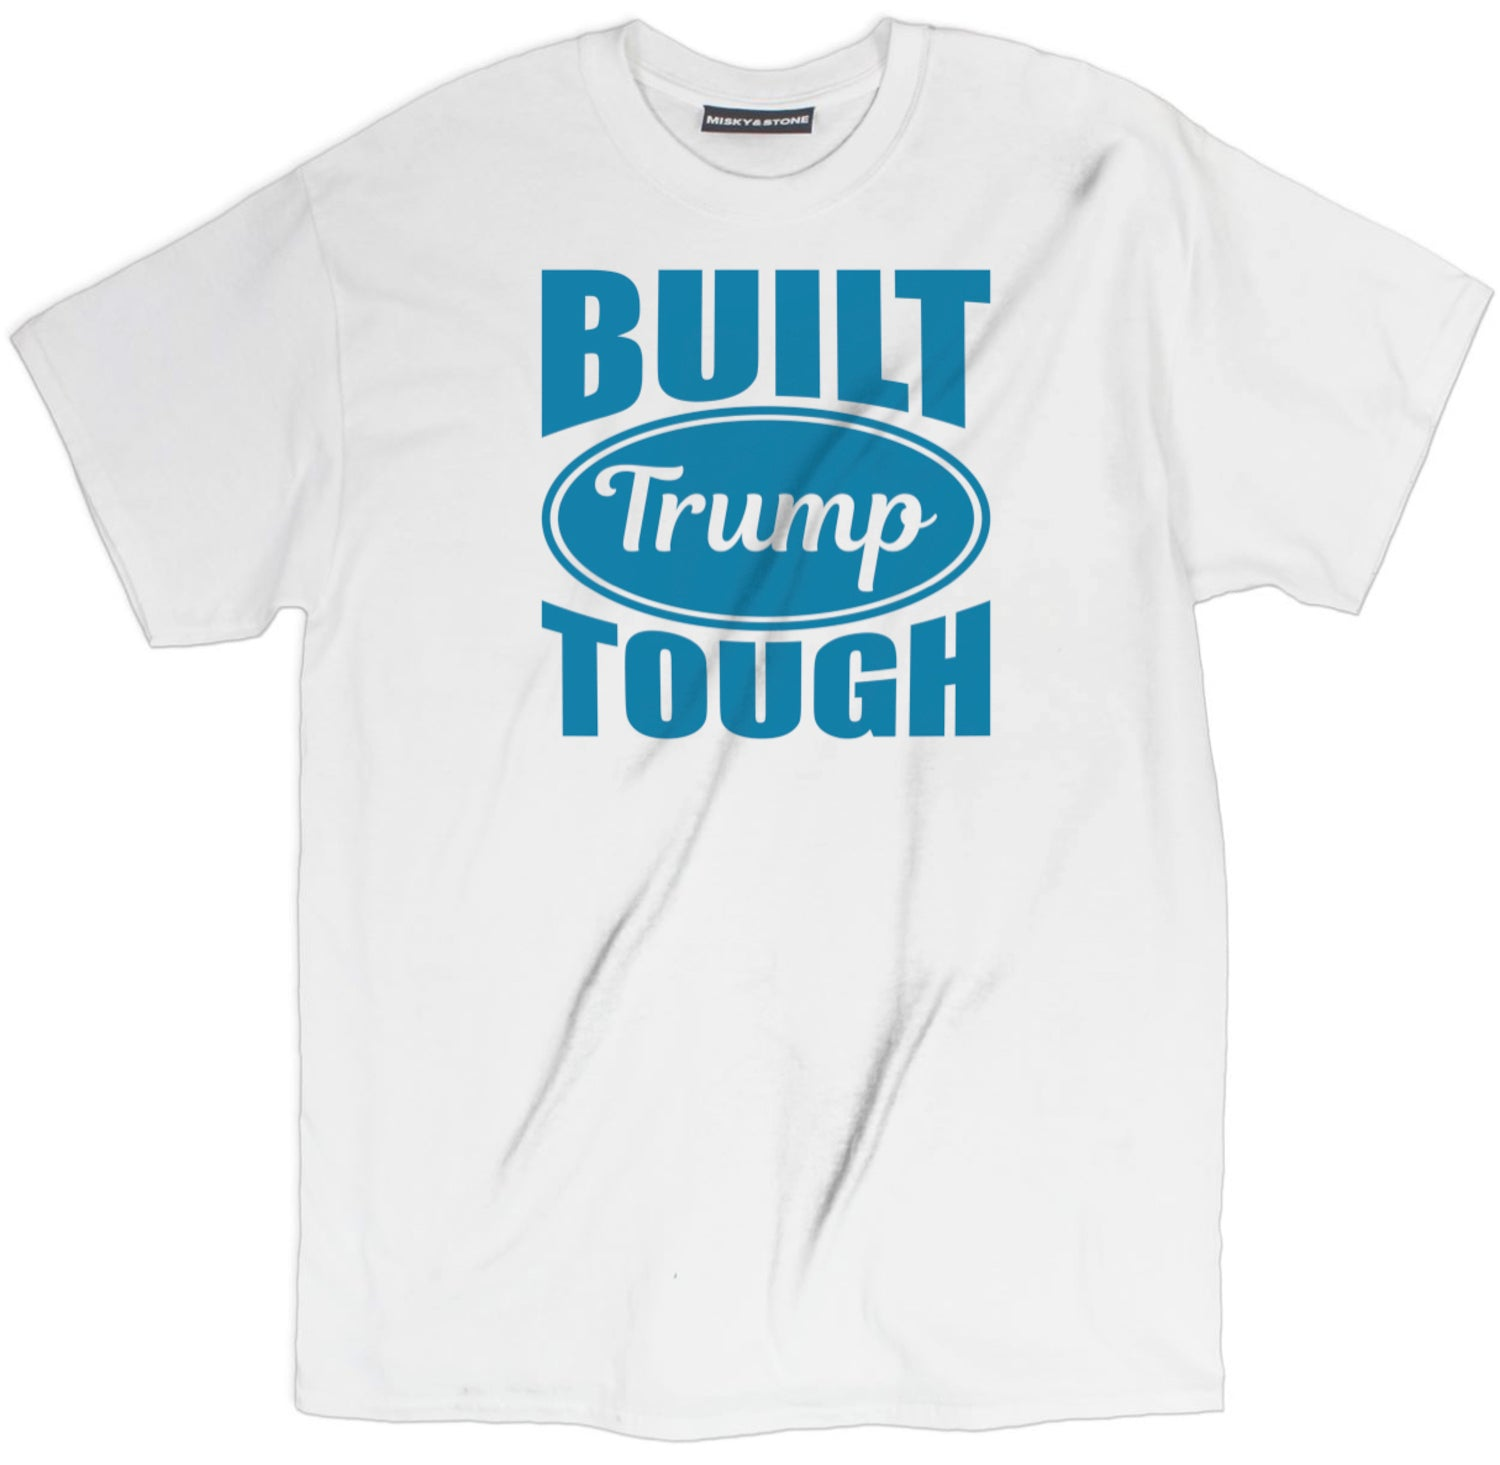 Built Trump Tough Tee